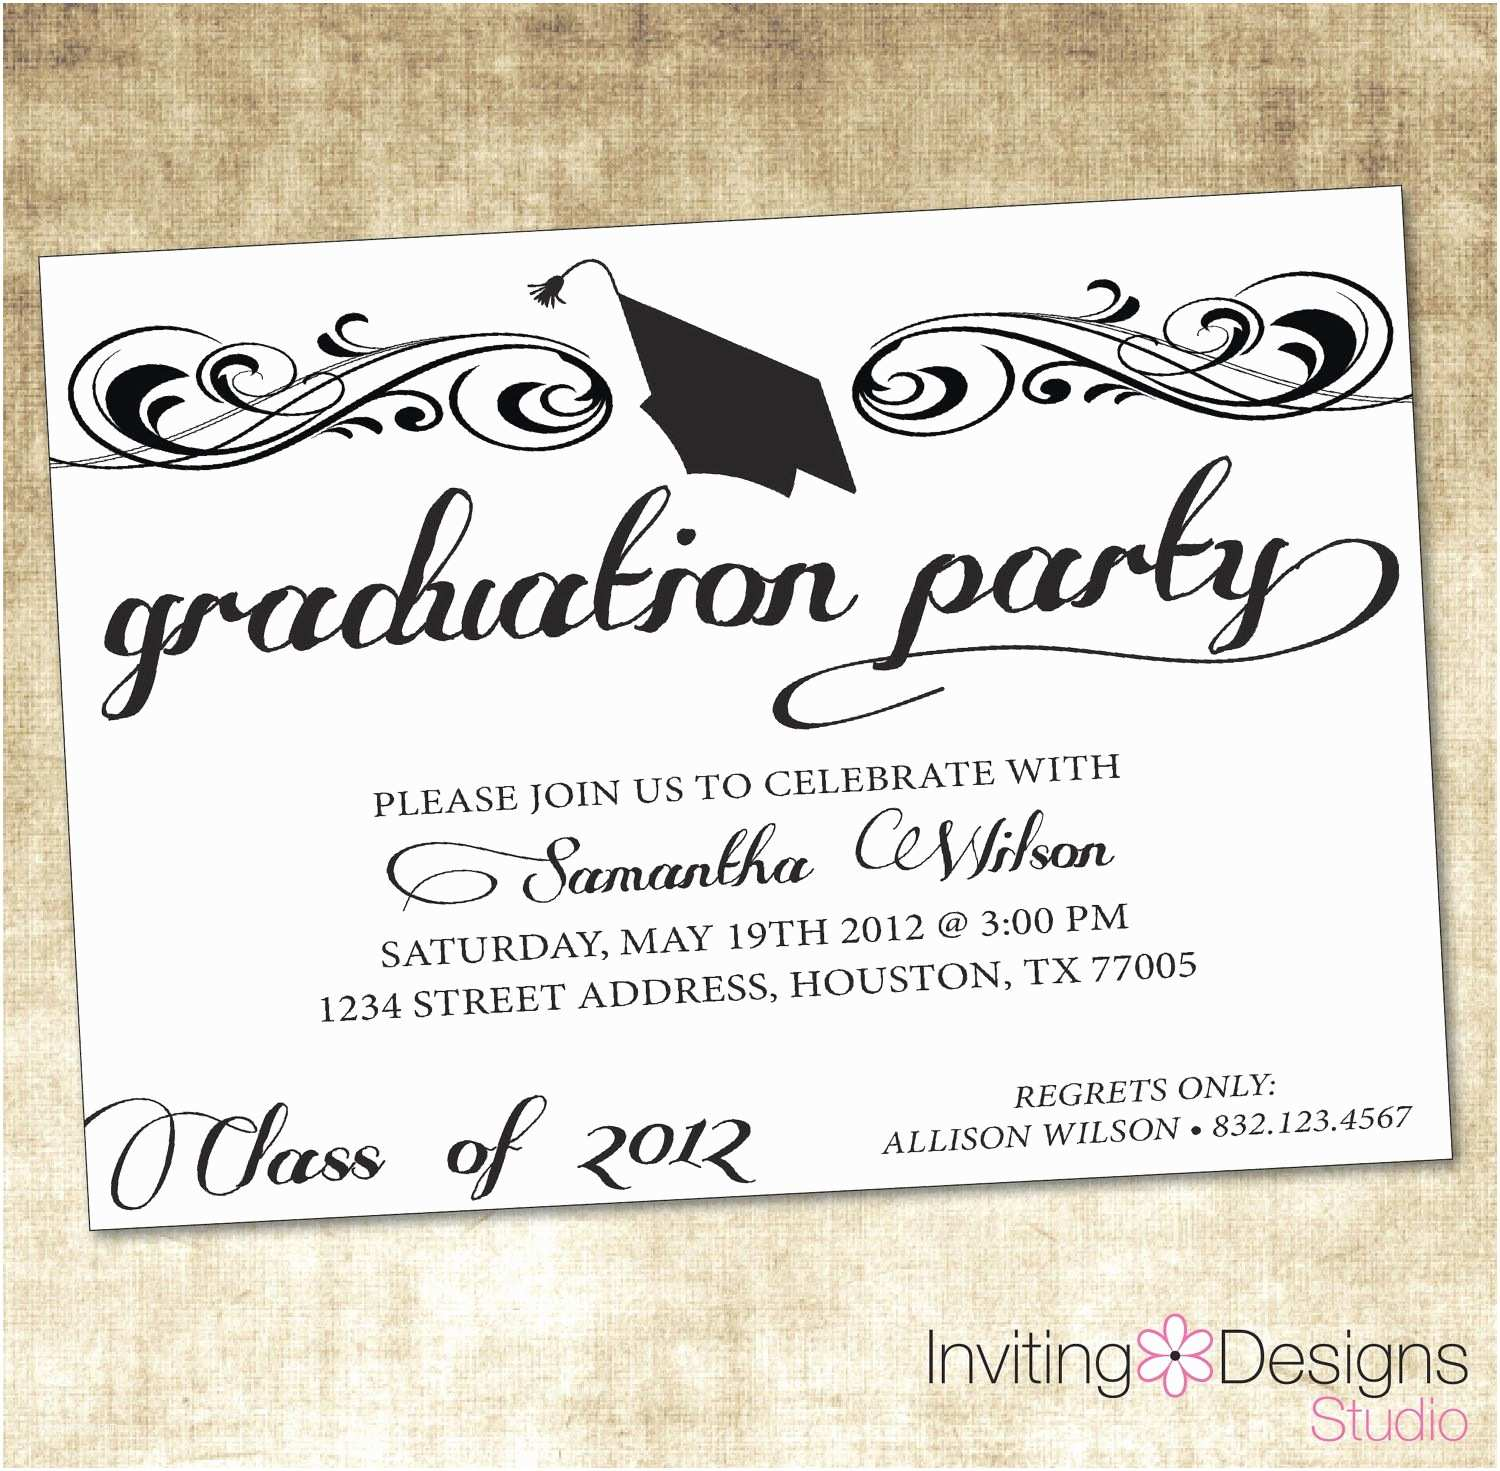 Graduation Invitations Templates Free Image Result for Graduation Party Invitation Wording Ideas